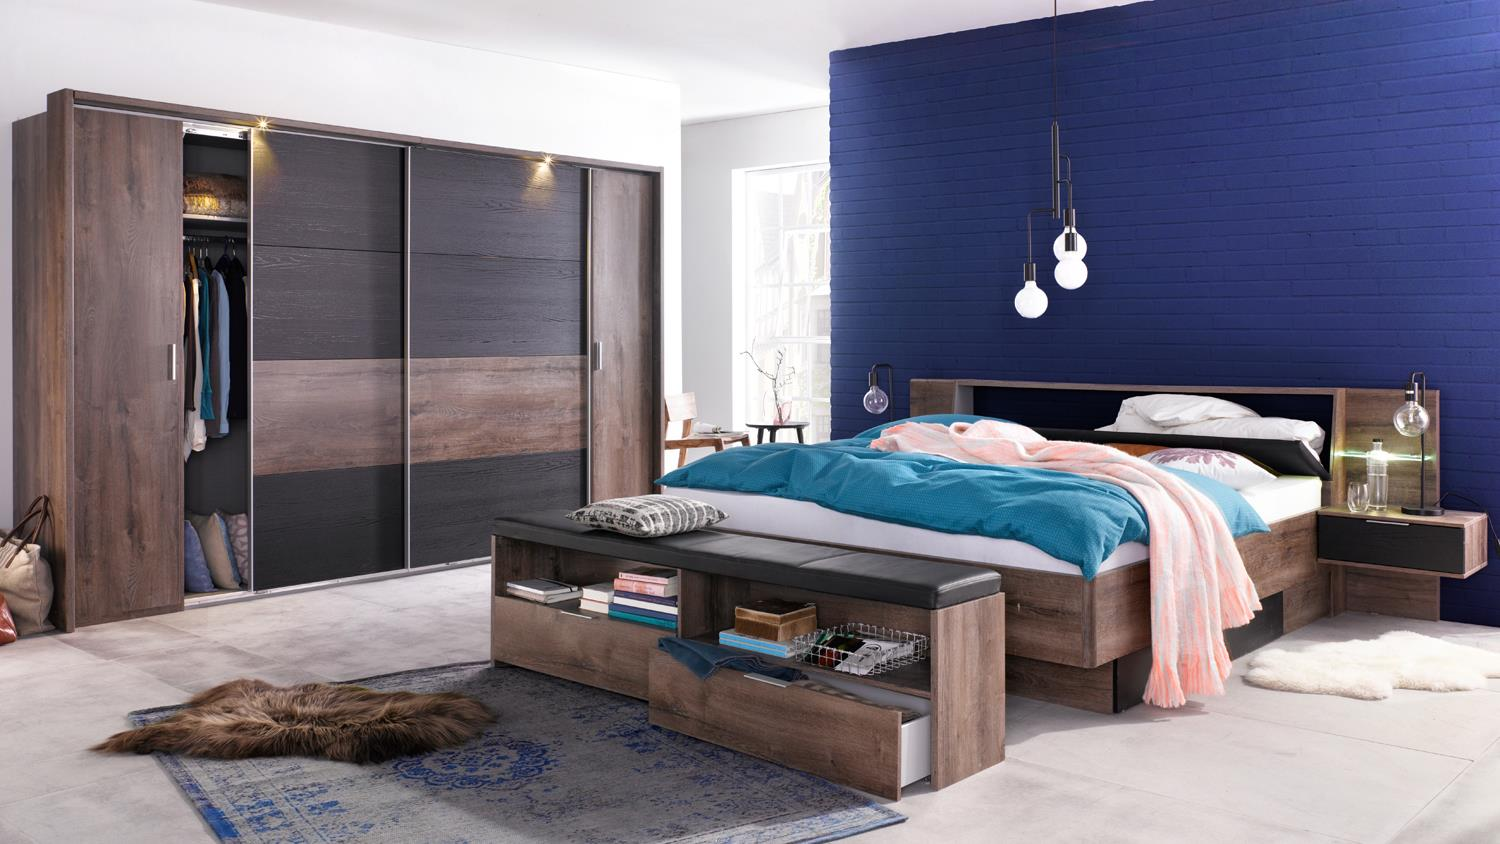 moderne dekoration indirekte wandbeleuchtung led images uncategorized moderne dekoration. Black Bedroom Furniture Sets. Home Design Ideas